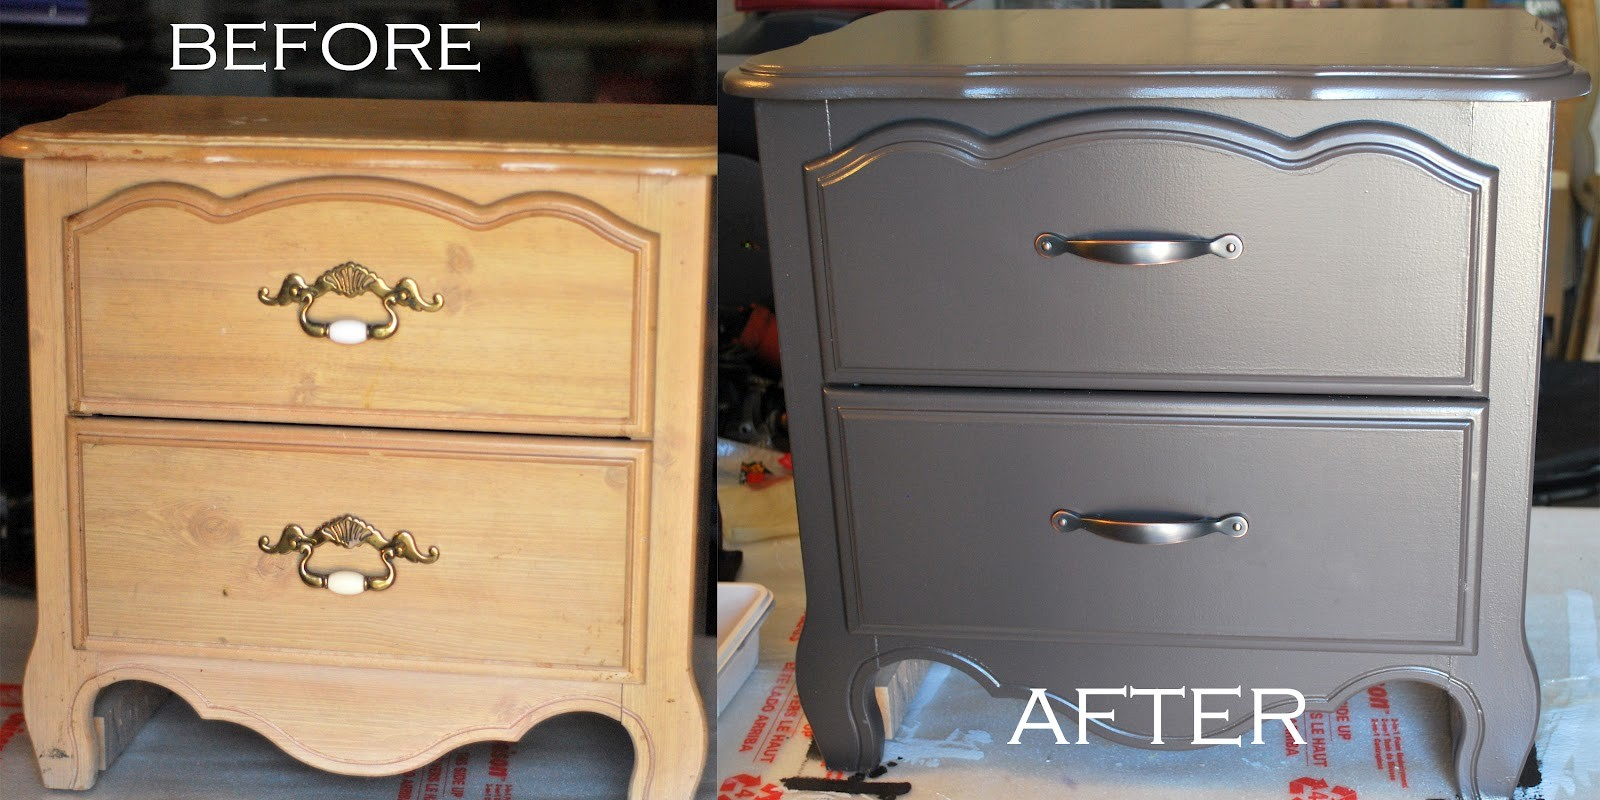 Spray Painting Wood Furniture Without Sanding